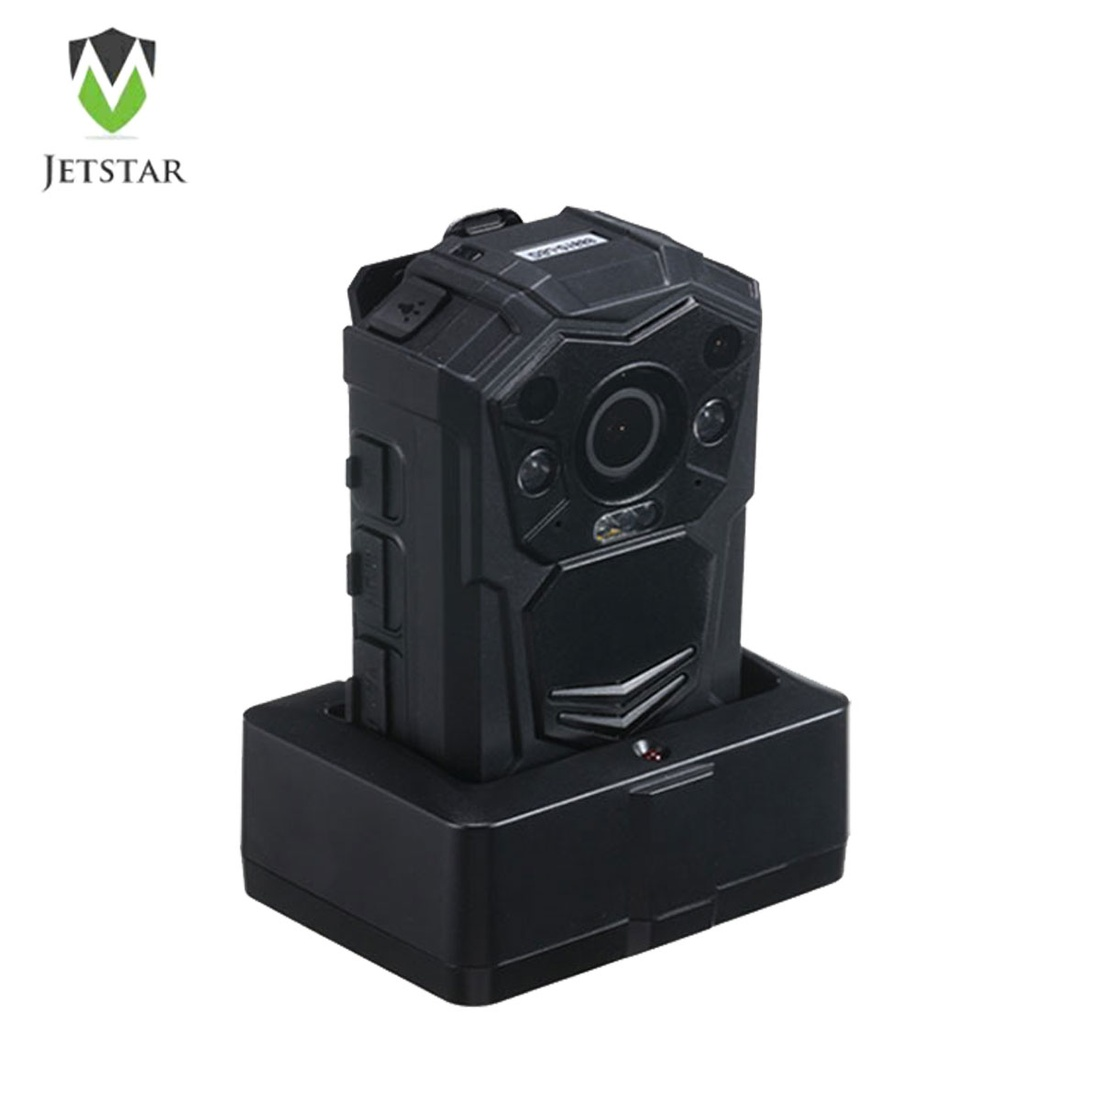 JS-B44 Body Worn Cameras(GPS/Glonass Optional)